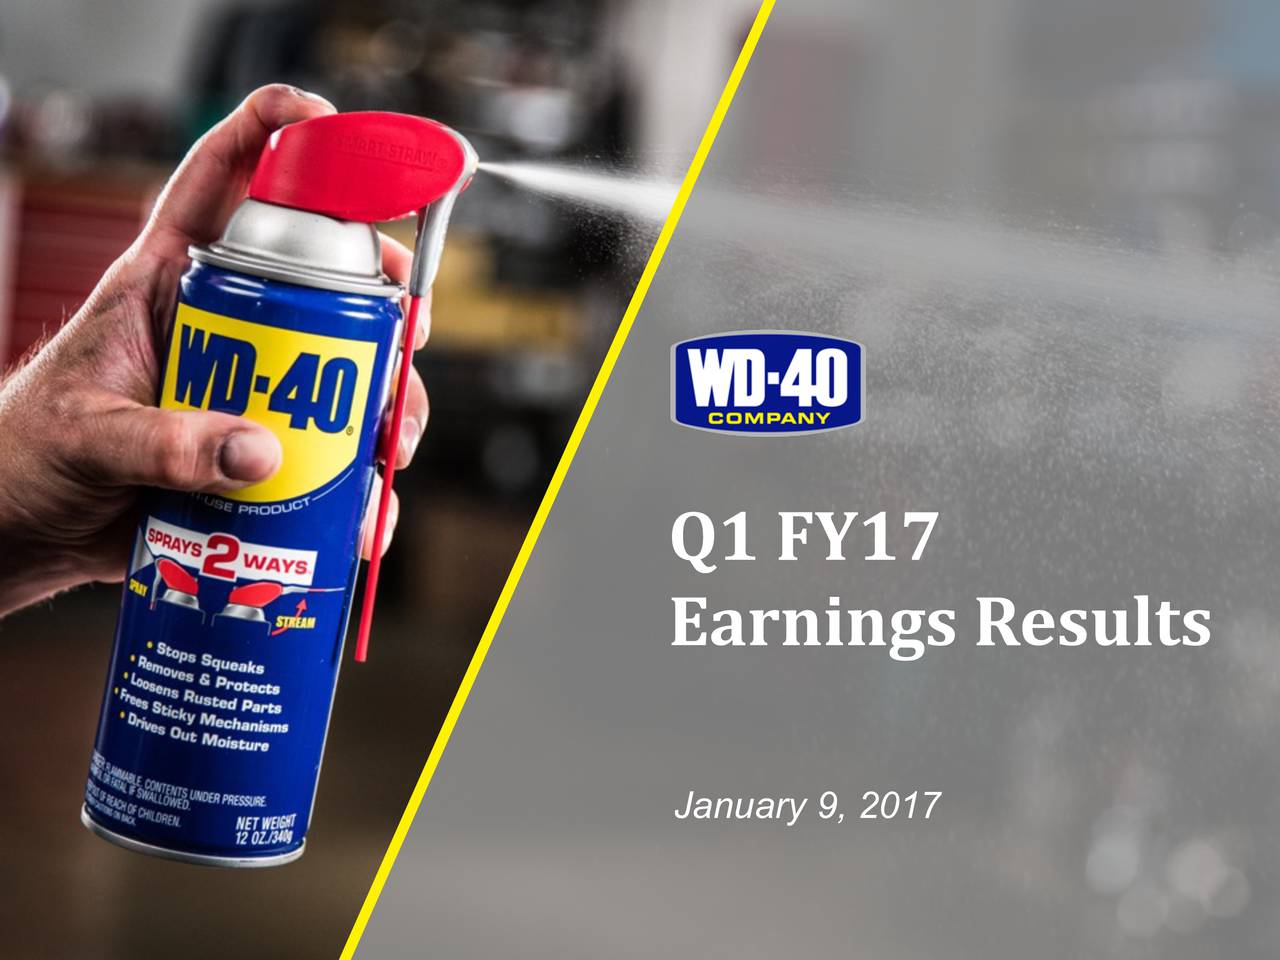 Earnings Results January 9, 2017